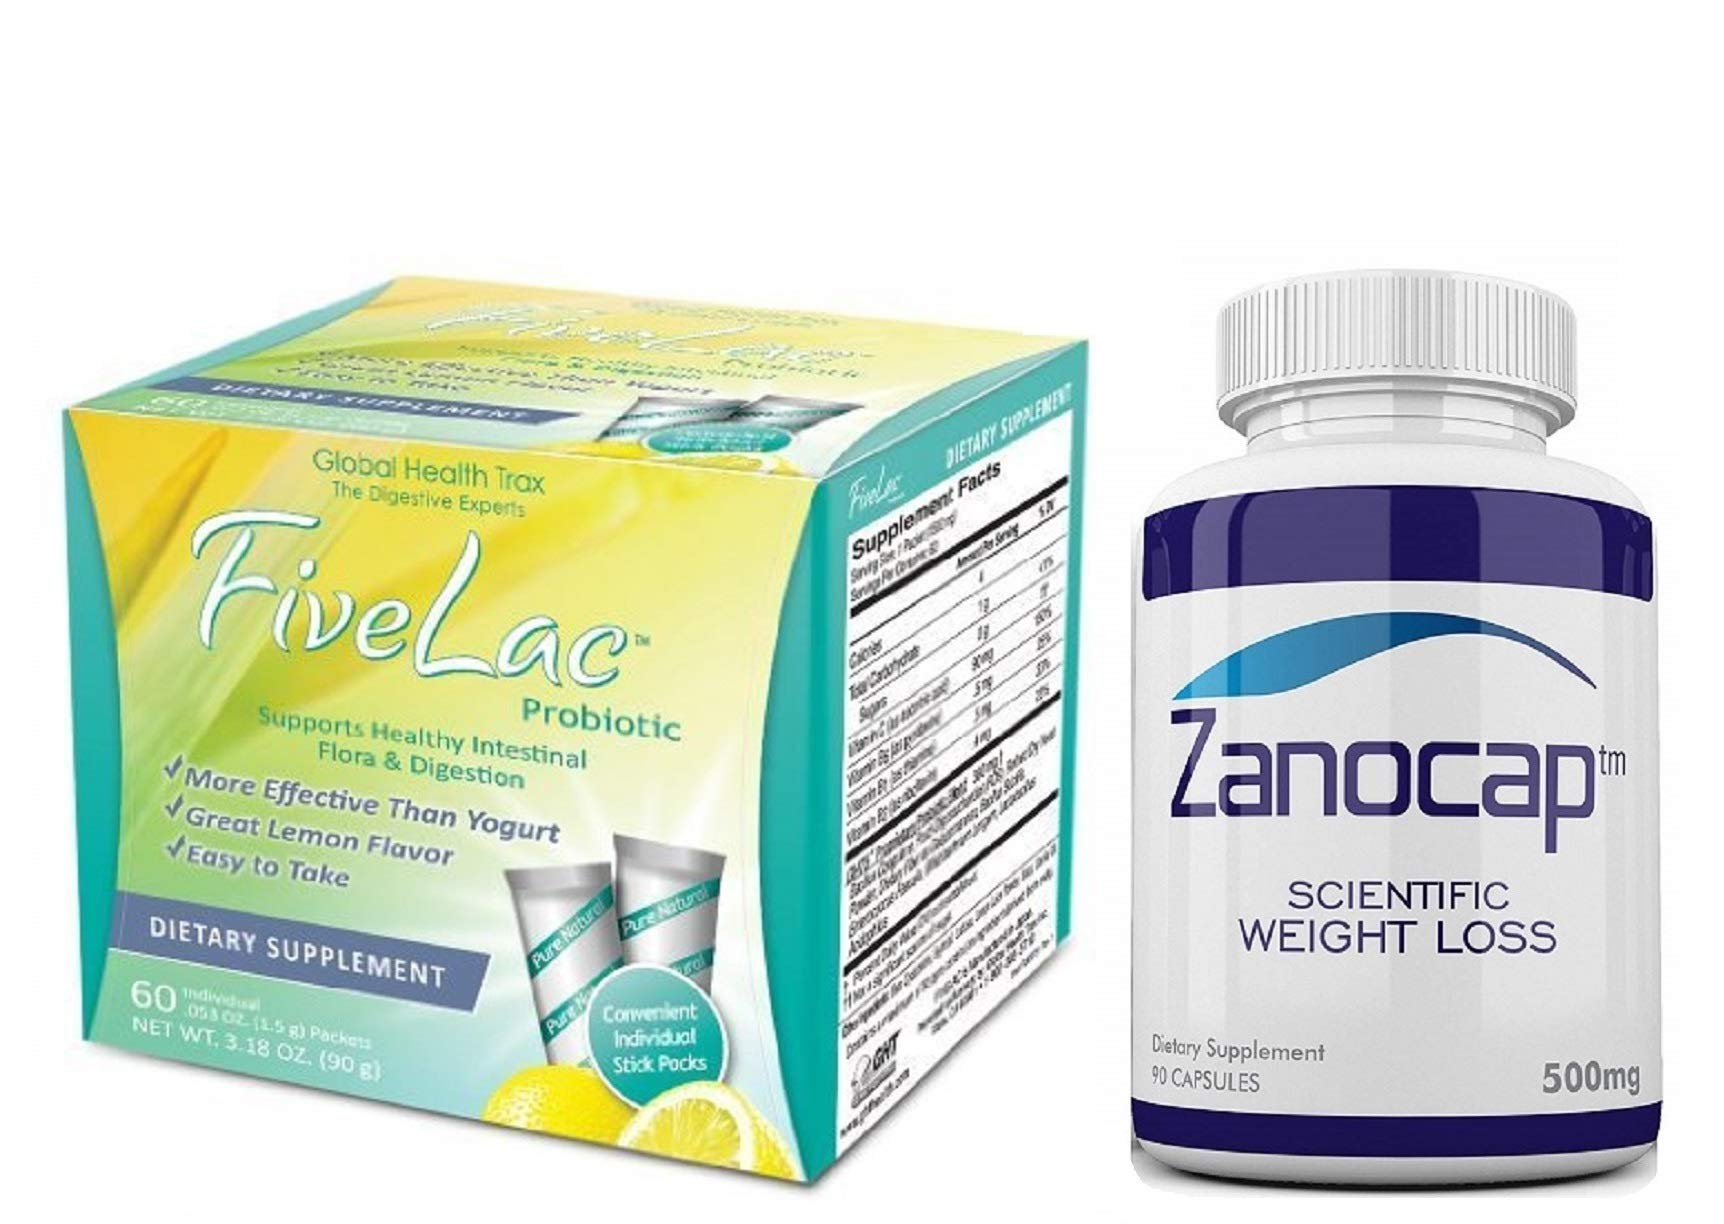 Fivelac Natural Probiotics Candida Solution 1 Pack of 60 Servings with Zanocap Scientific Weight Loss 1 Bottle by M3Dl Kits